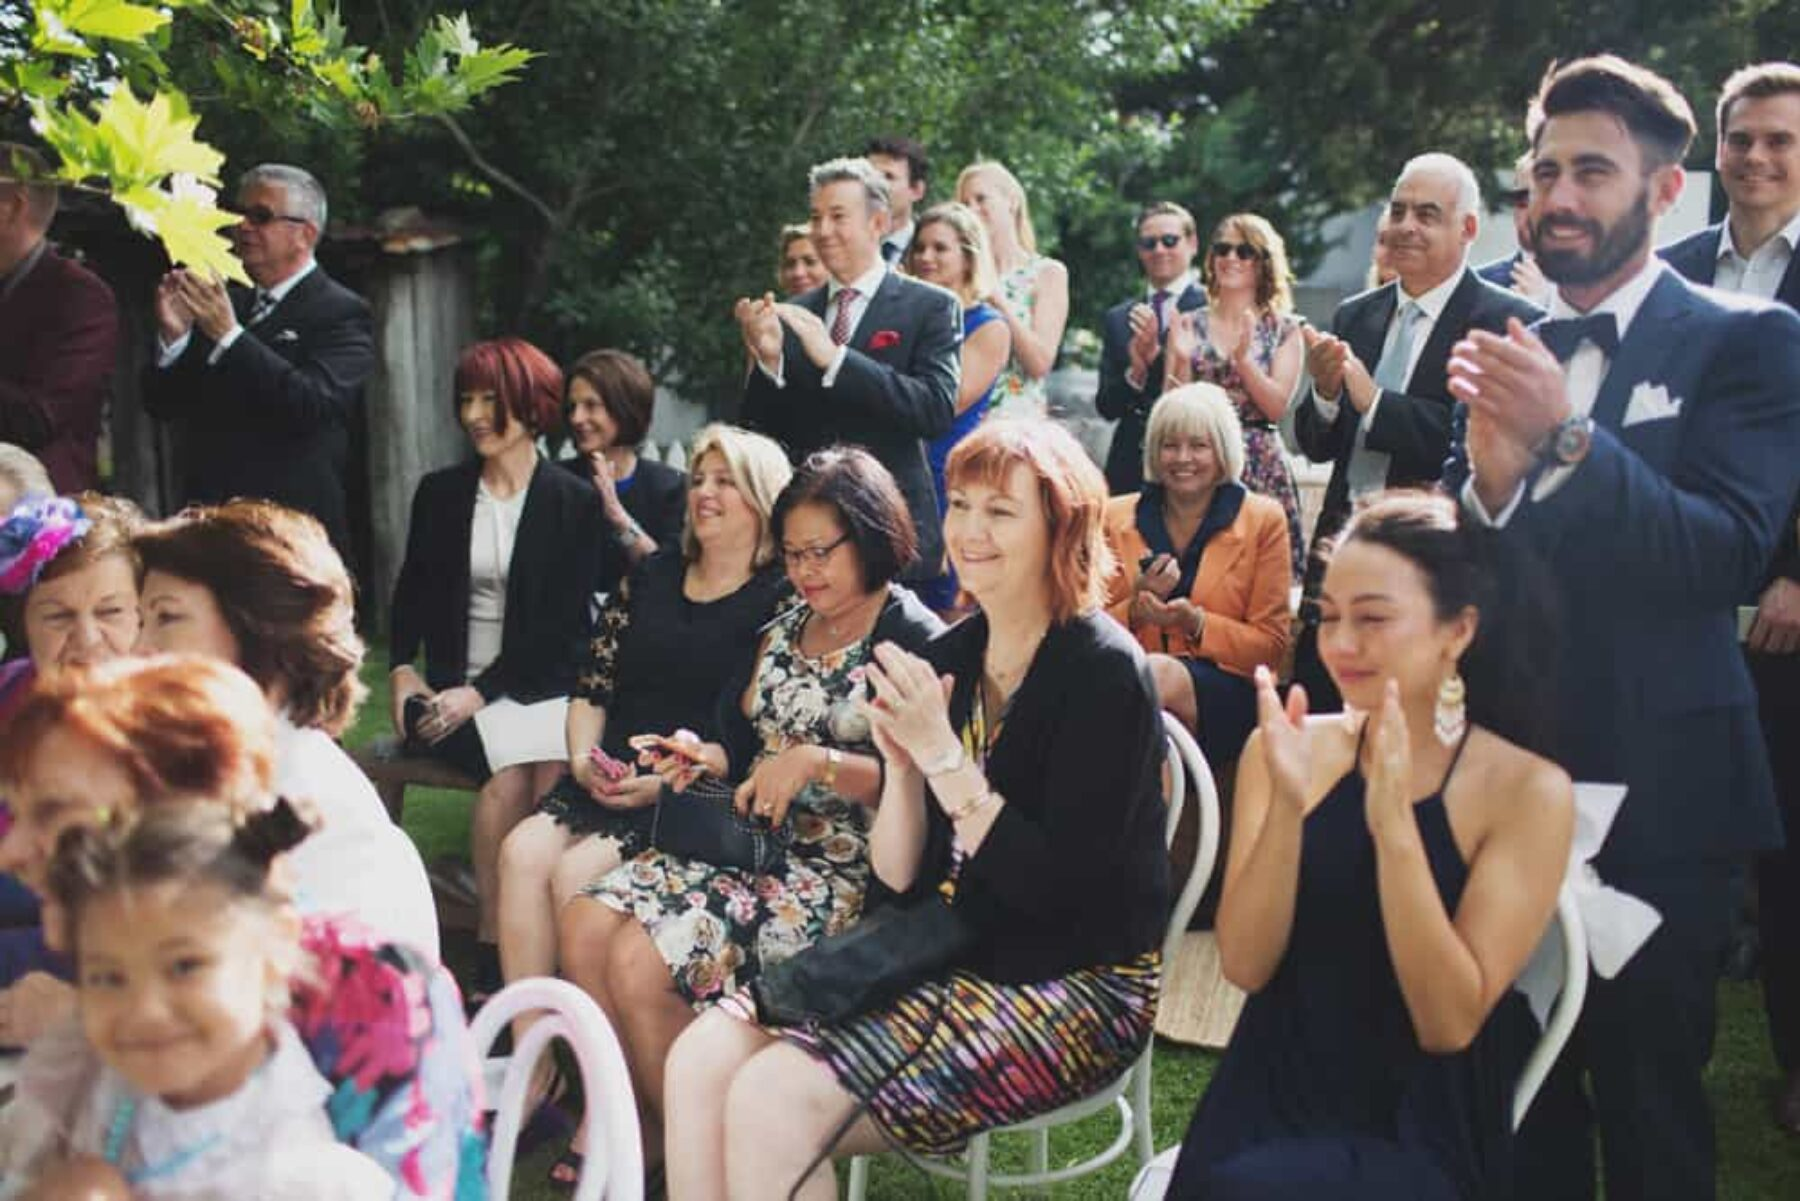 Adelaide Hills wedding at The White House - photography by Whitewall